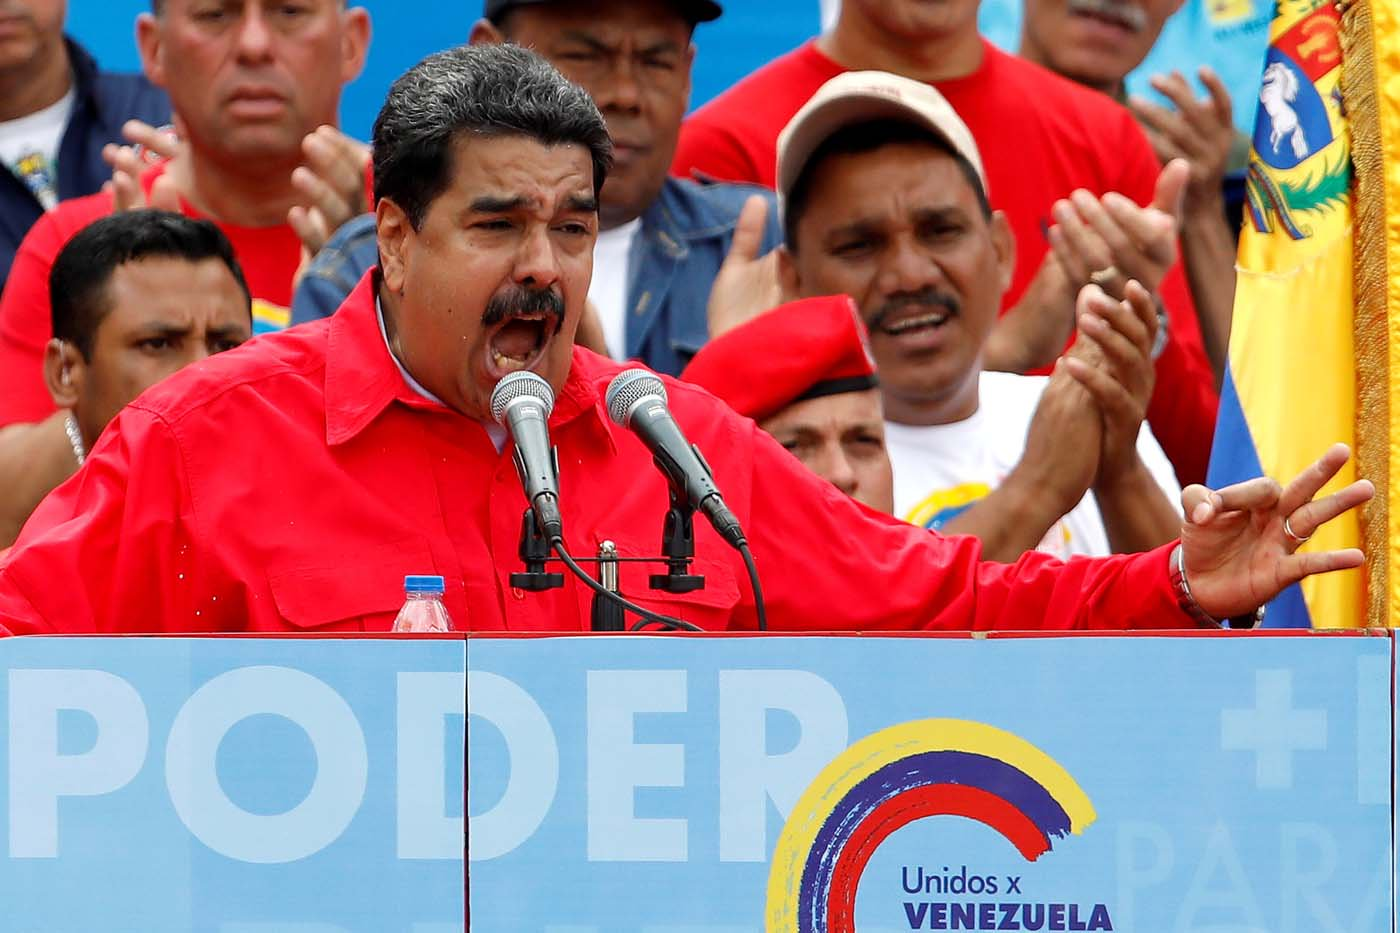 """FILE PHOTO: Venezuela's President Nicolas Maduro delivers a speech during the closing campaign ceremony for the upcoming Constituent Assembly election in Caracas, Venezuela July 27, 2017 . The banner reads """"Power"""". REUTERS/Carlos Garcias Rawlins/File Photo"""